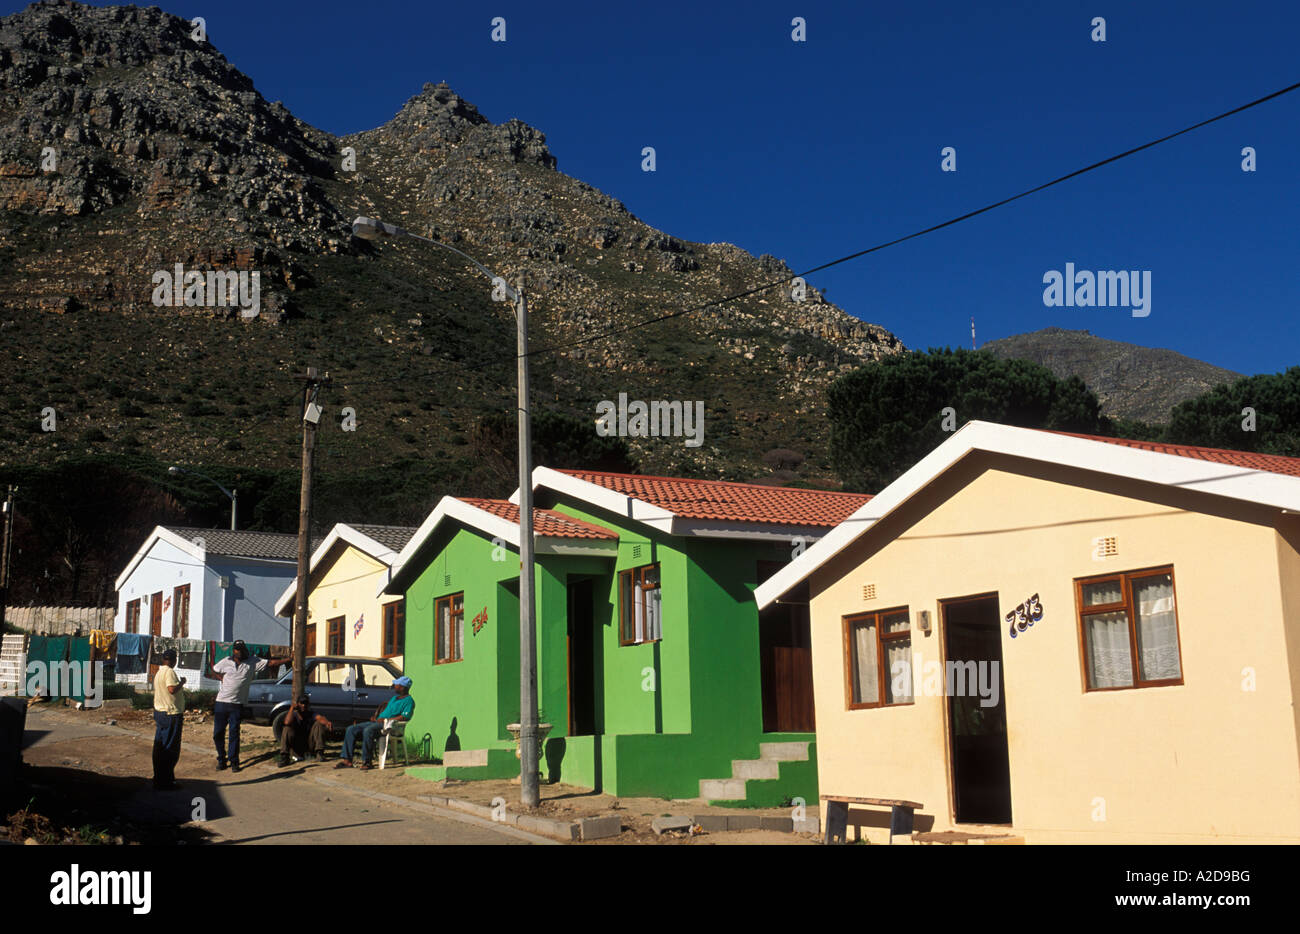 New houses houtbay township imizamo yethu cape town south africa stock image